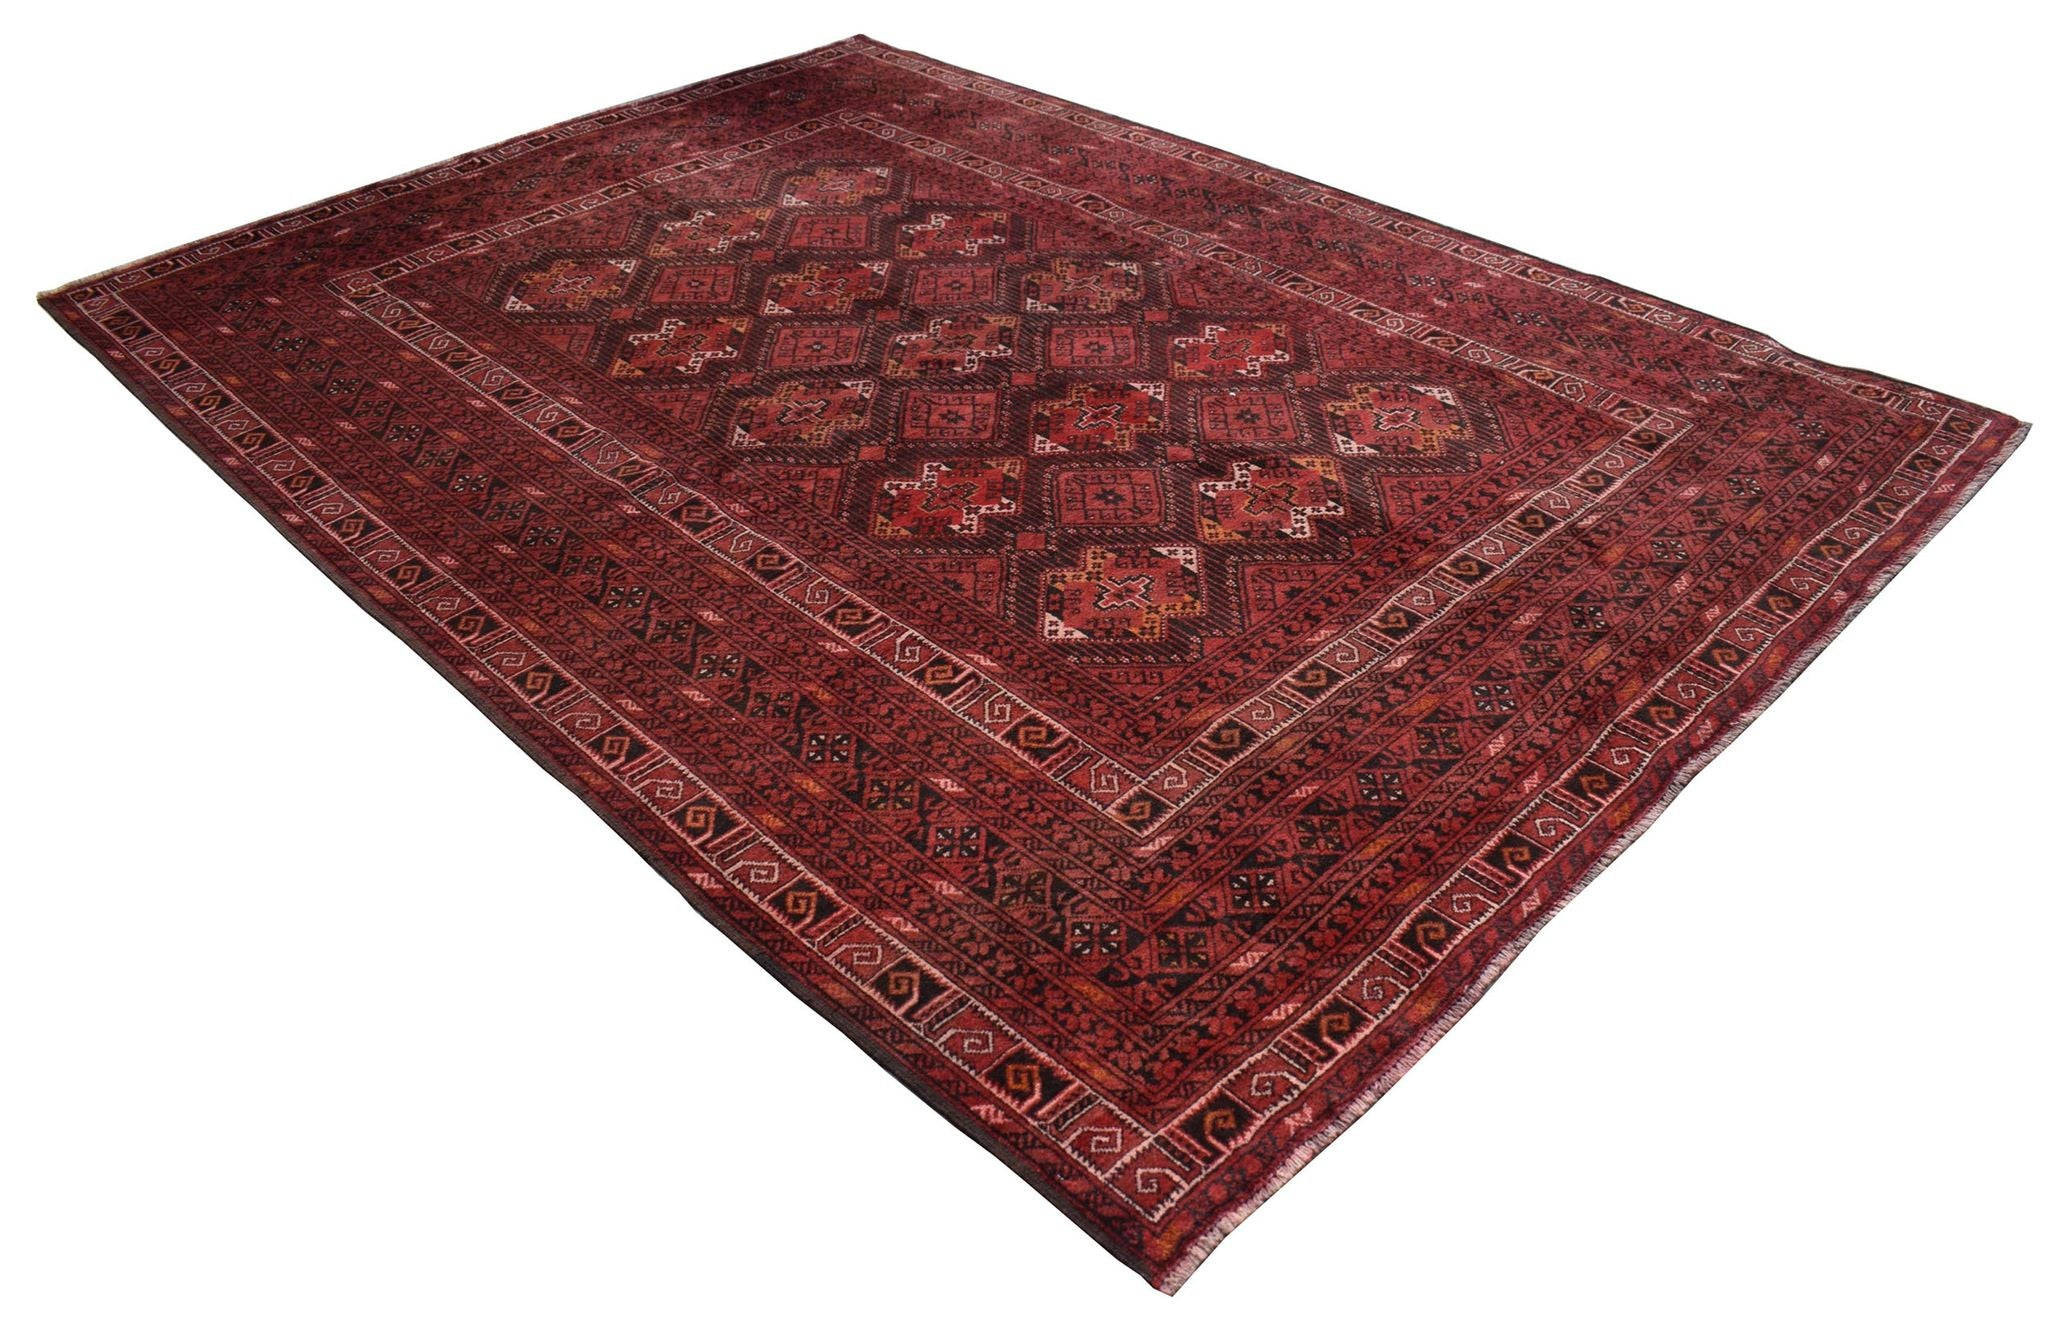 Authentic Antique Afghan Rug in Red